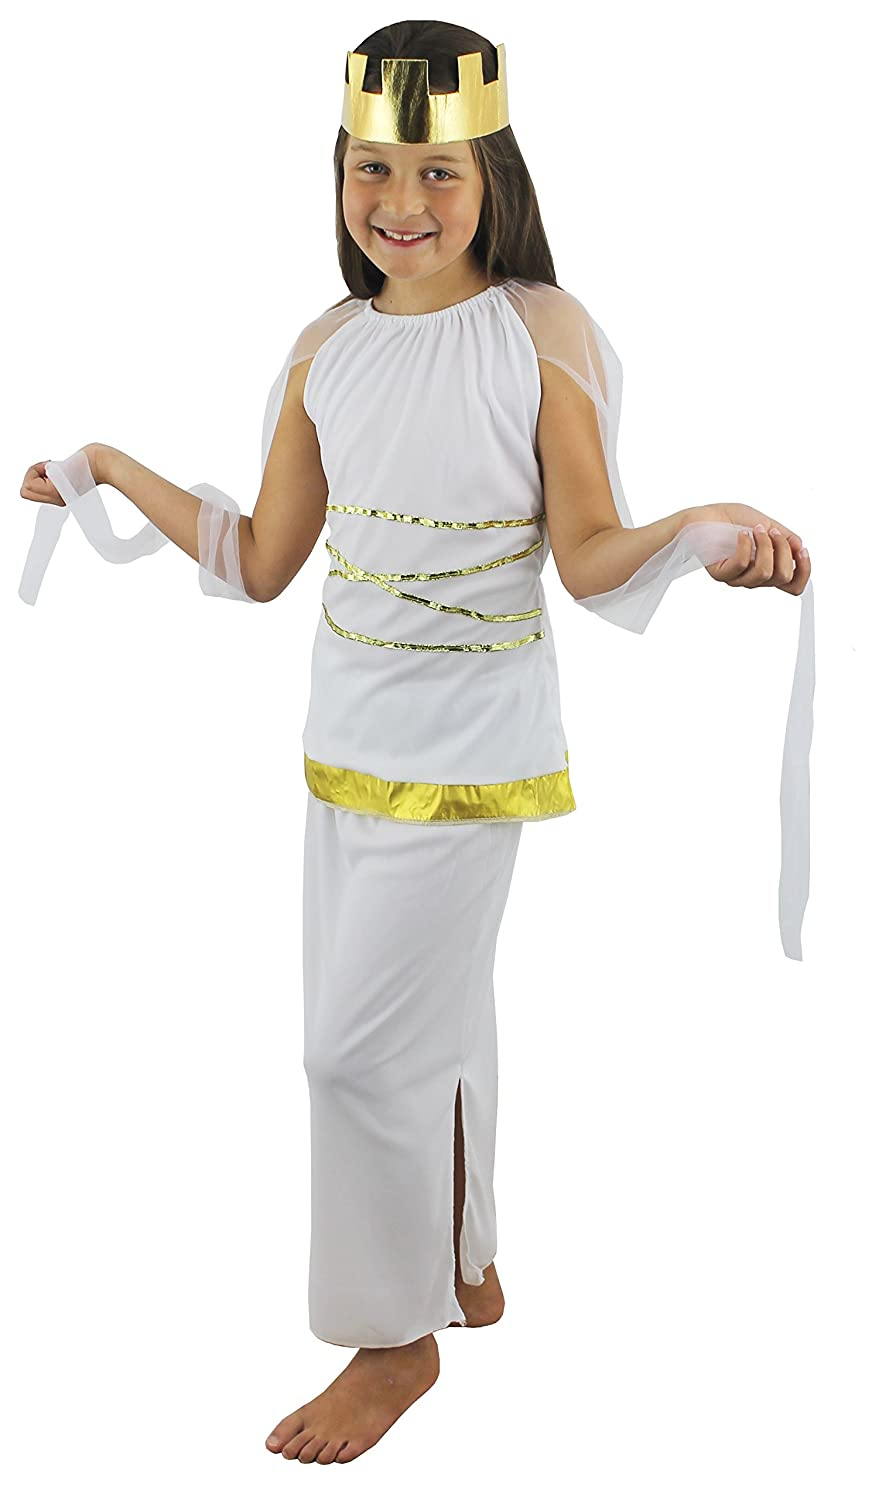 childs greek girls goddess hera fancy dress costume 3 sizes s m l